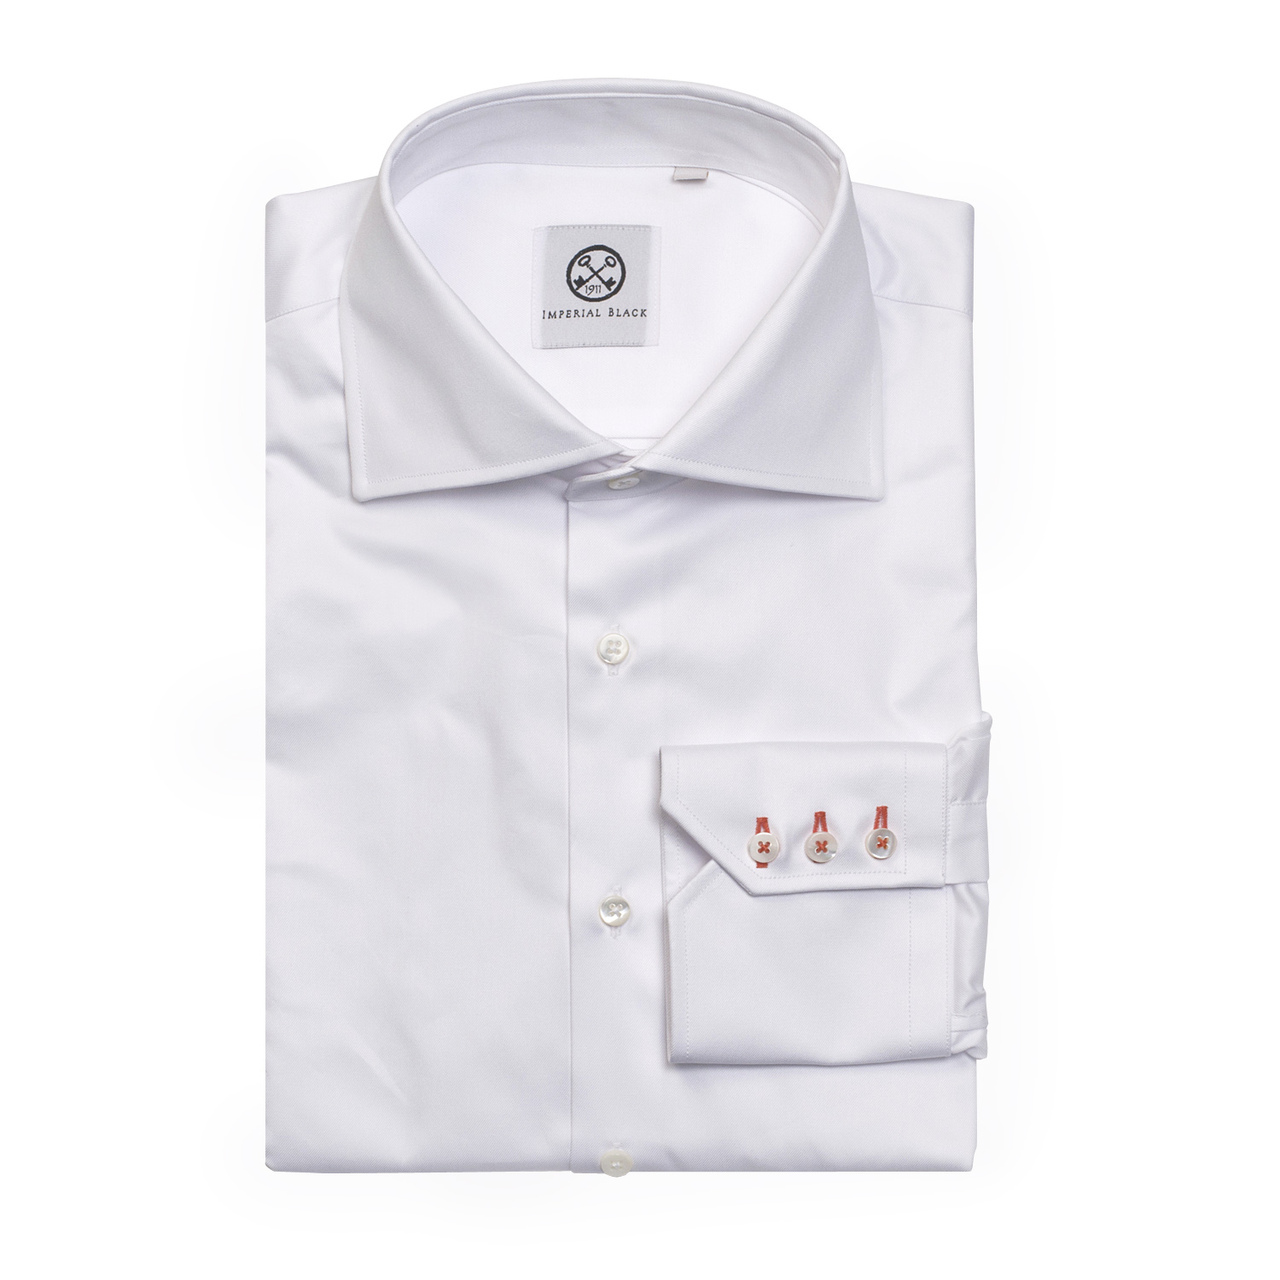 The perfect shirt Imperial Black mens luxury lifestyle